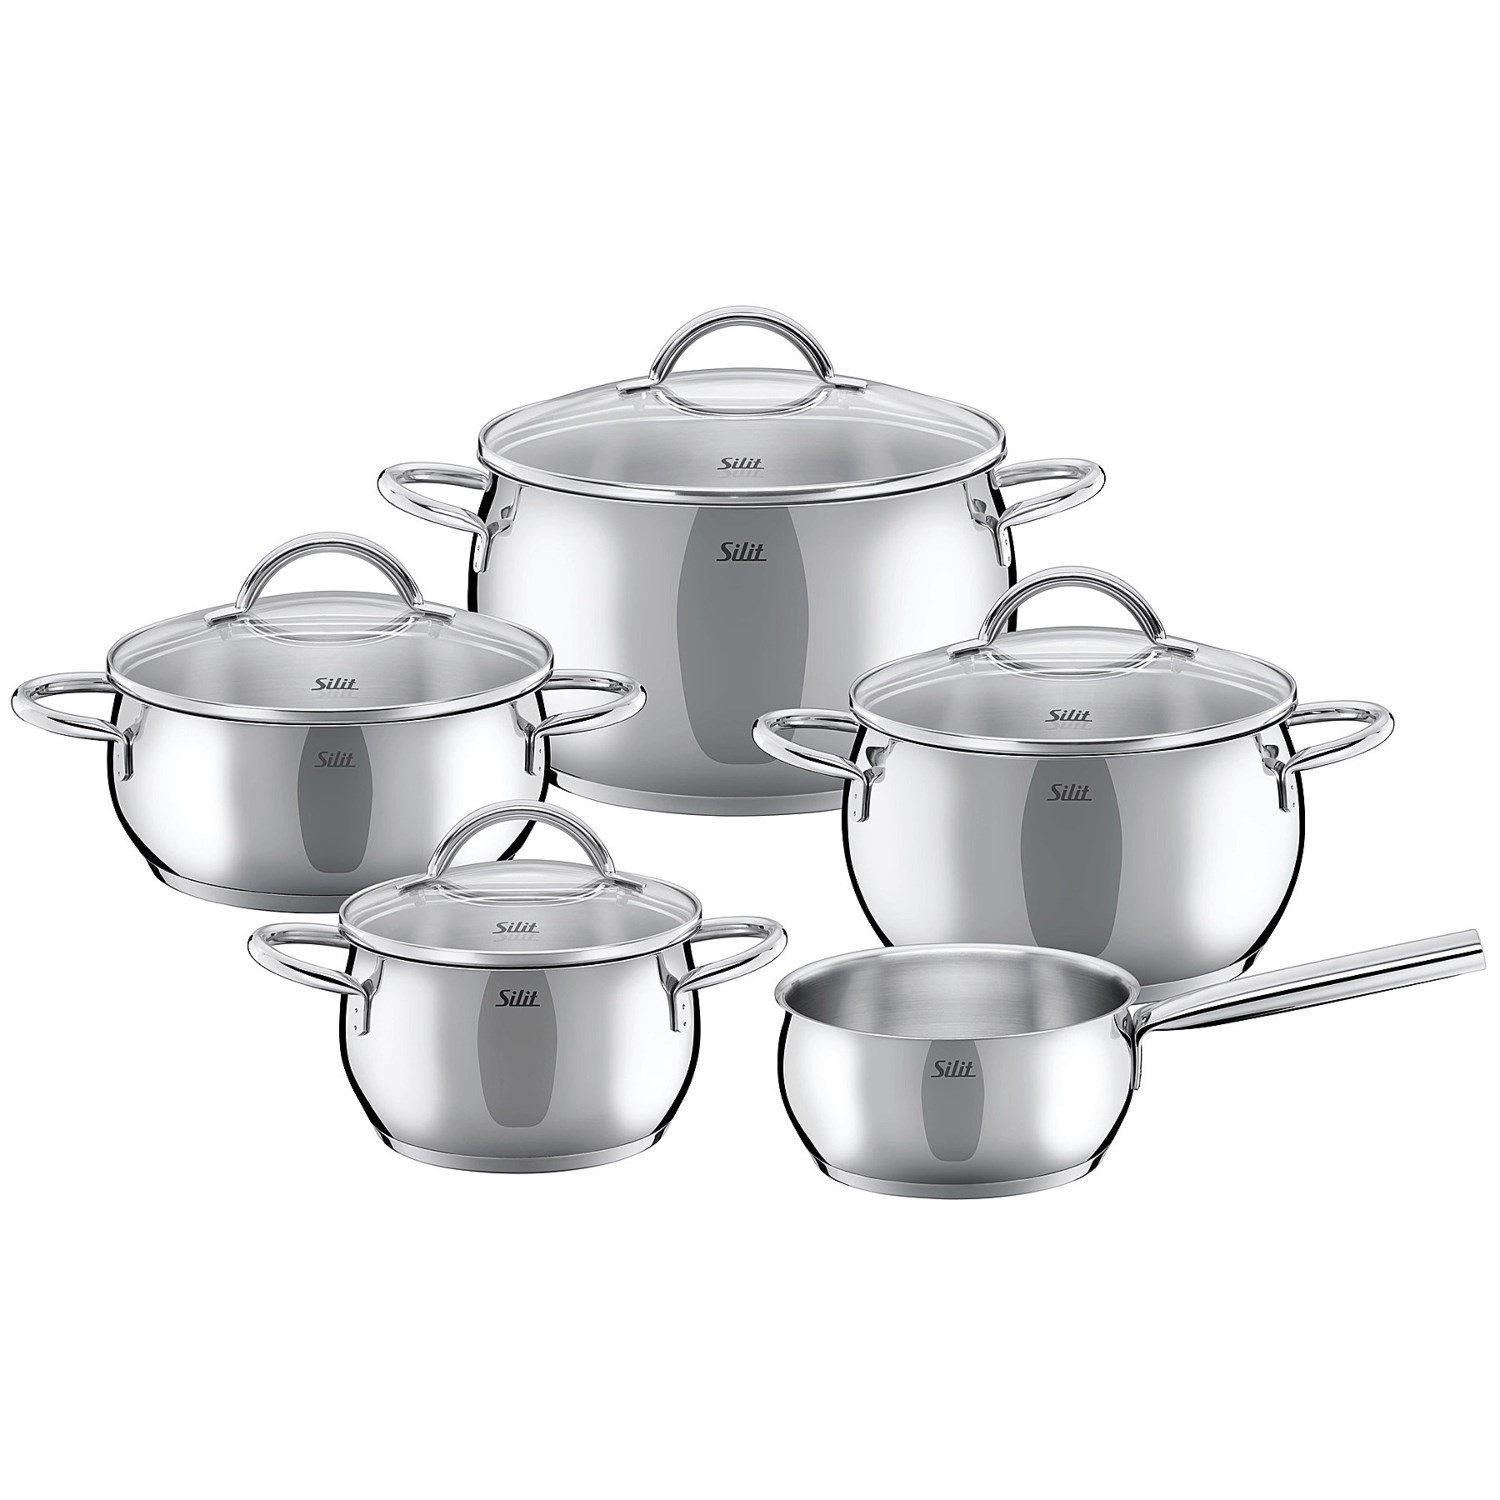 silit nobile stainless steel induction cookware set 9 piece save 68. Black Bedroom Furniture Sets. Home Design Ideas